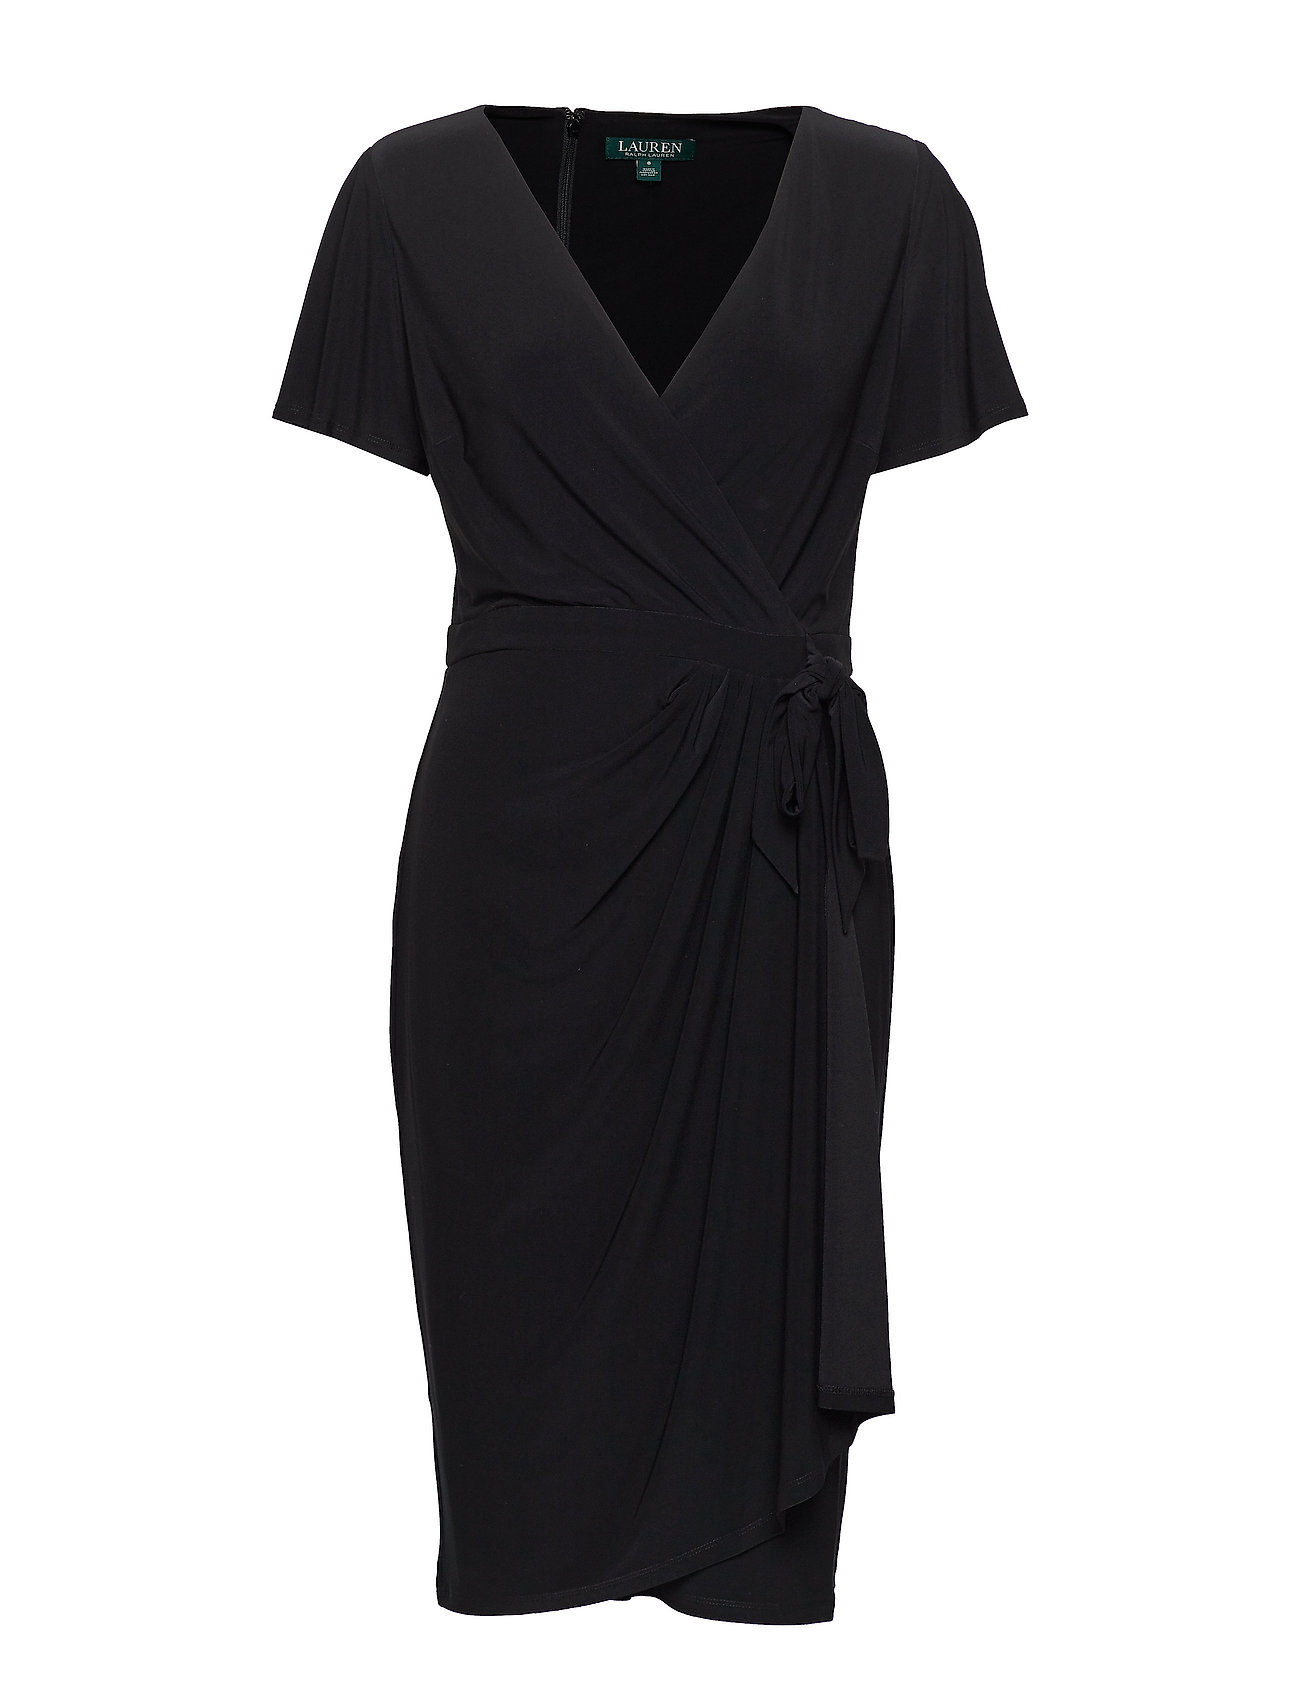 Lauren Ralph Lauren Faux-Tie Jersey Dress